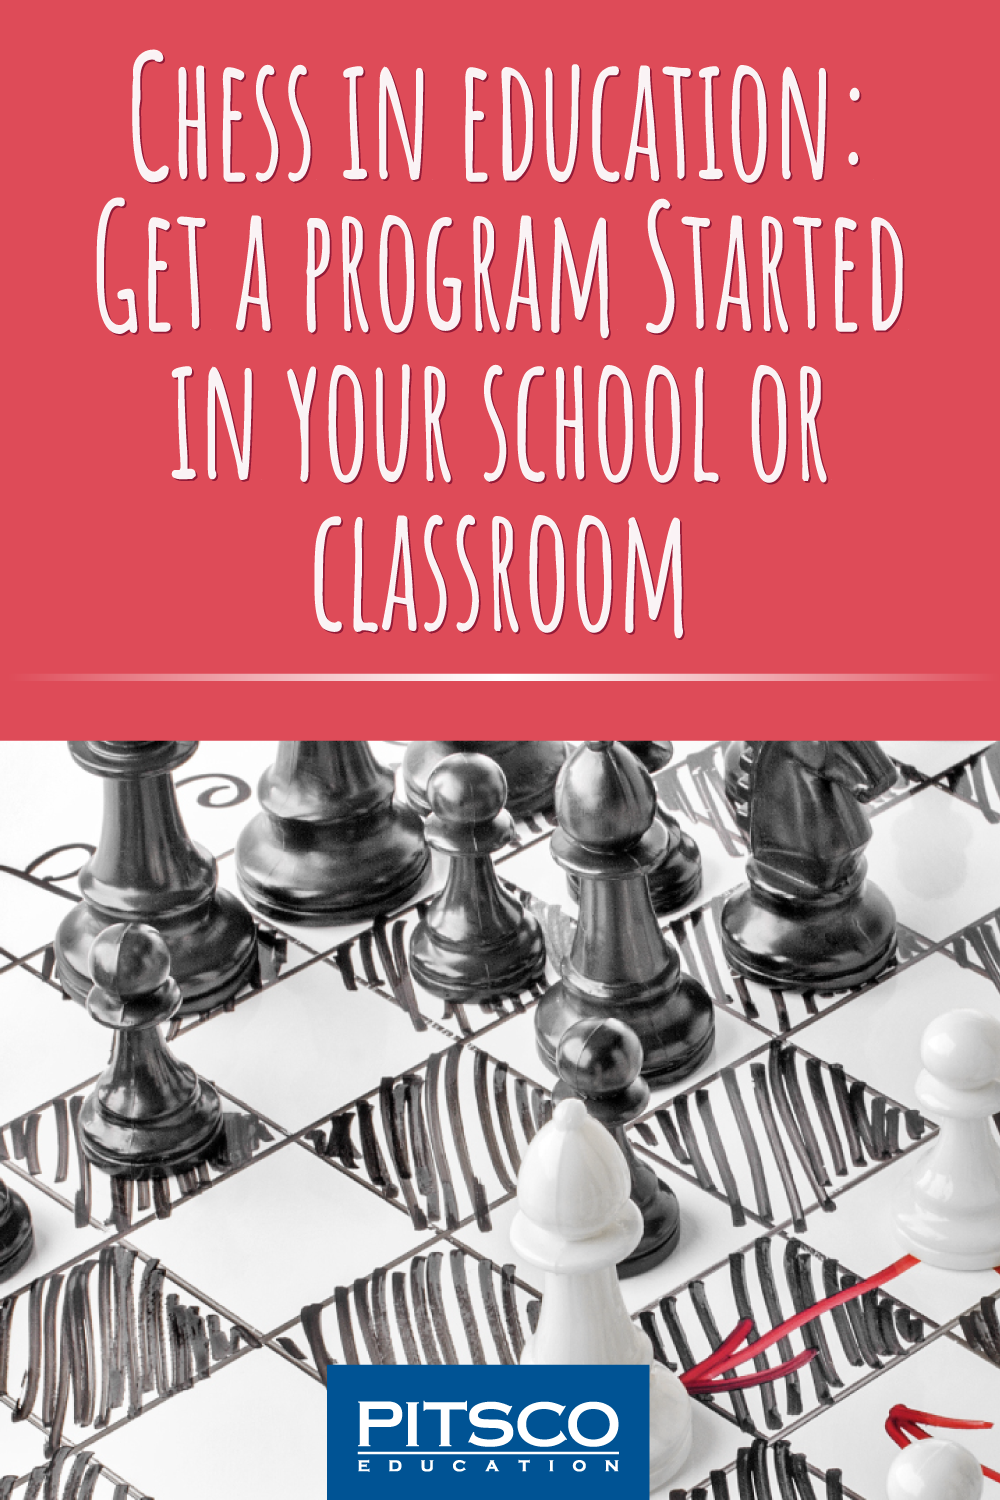 Chess-In-Education-1000-0721